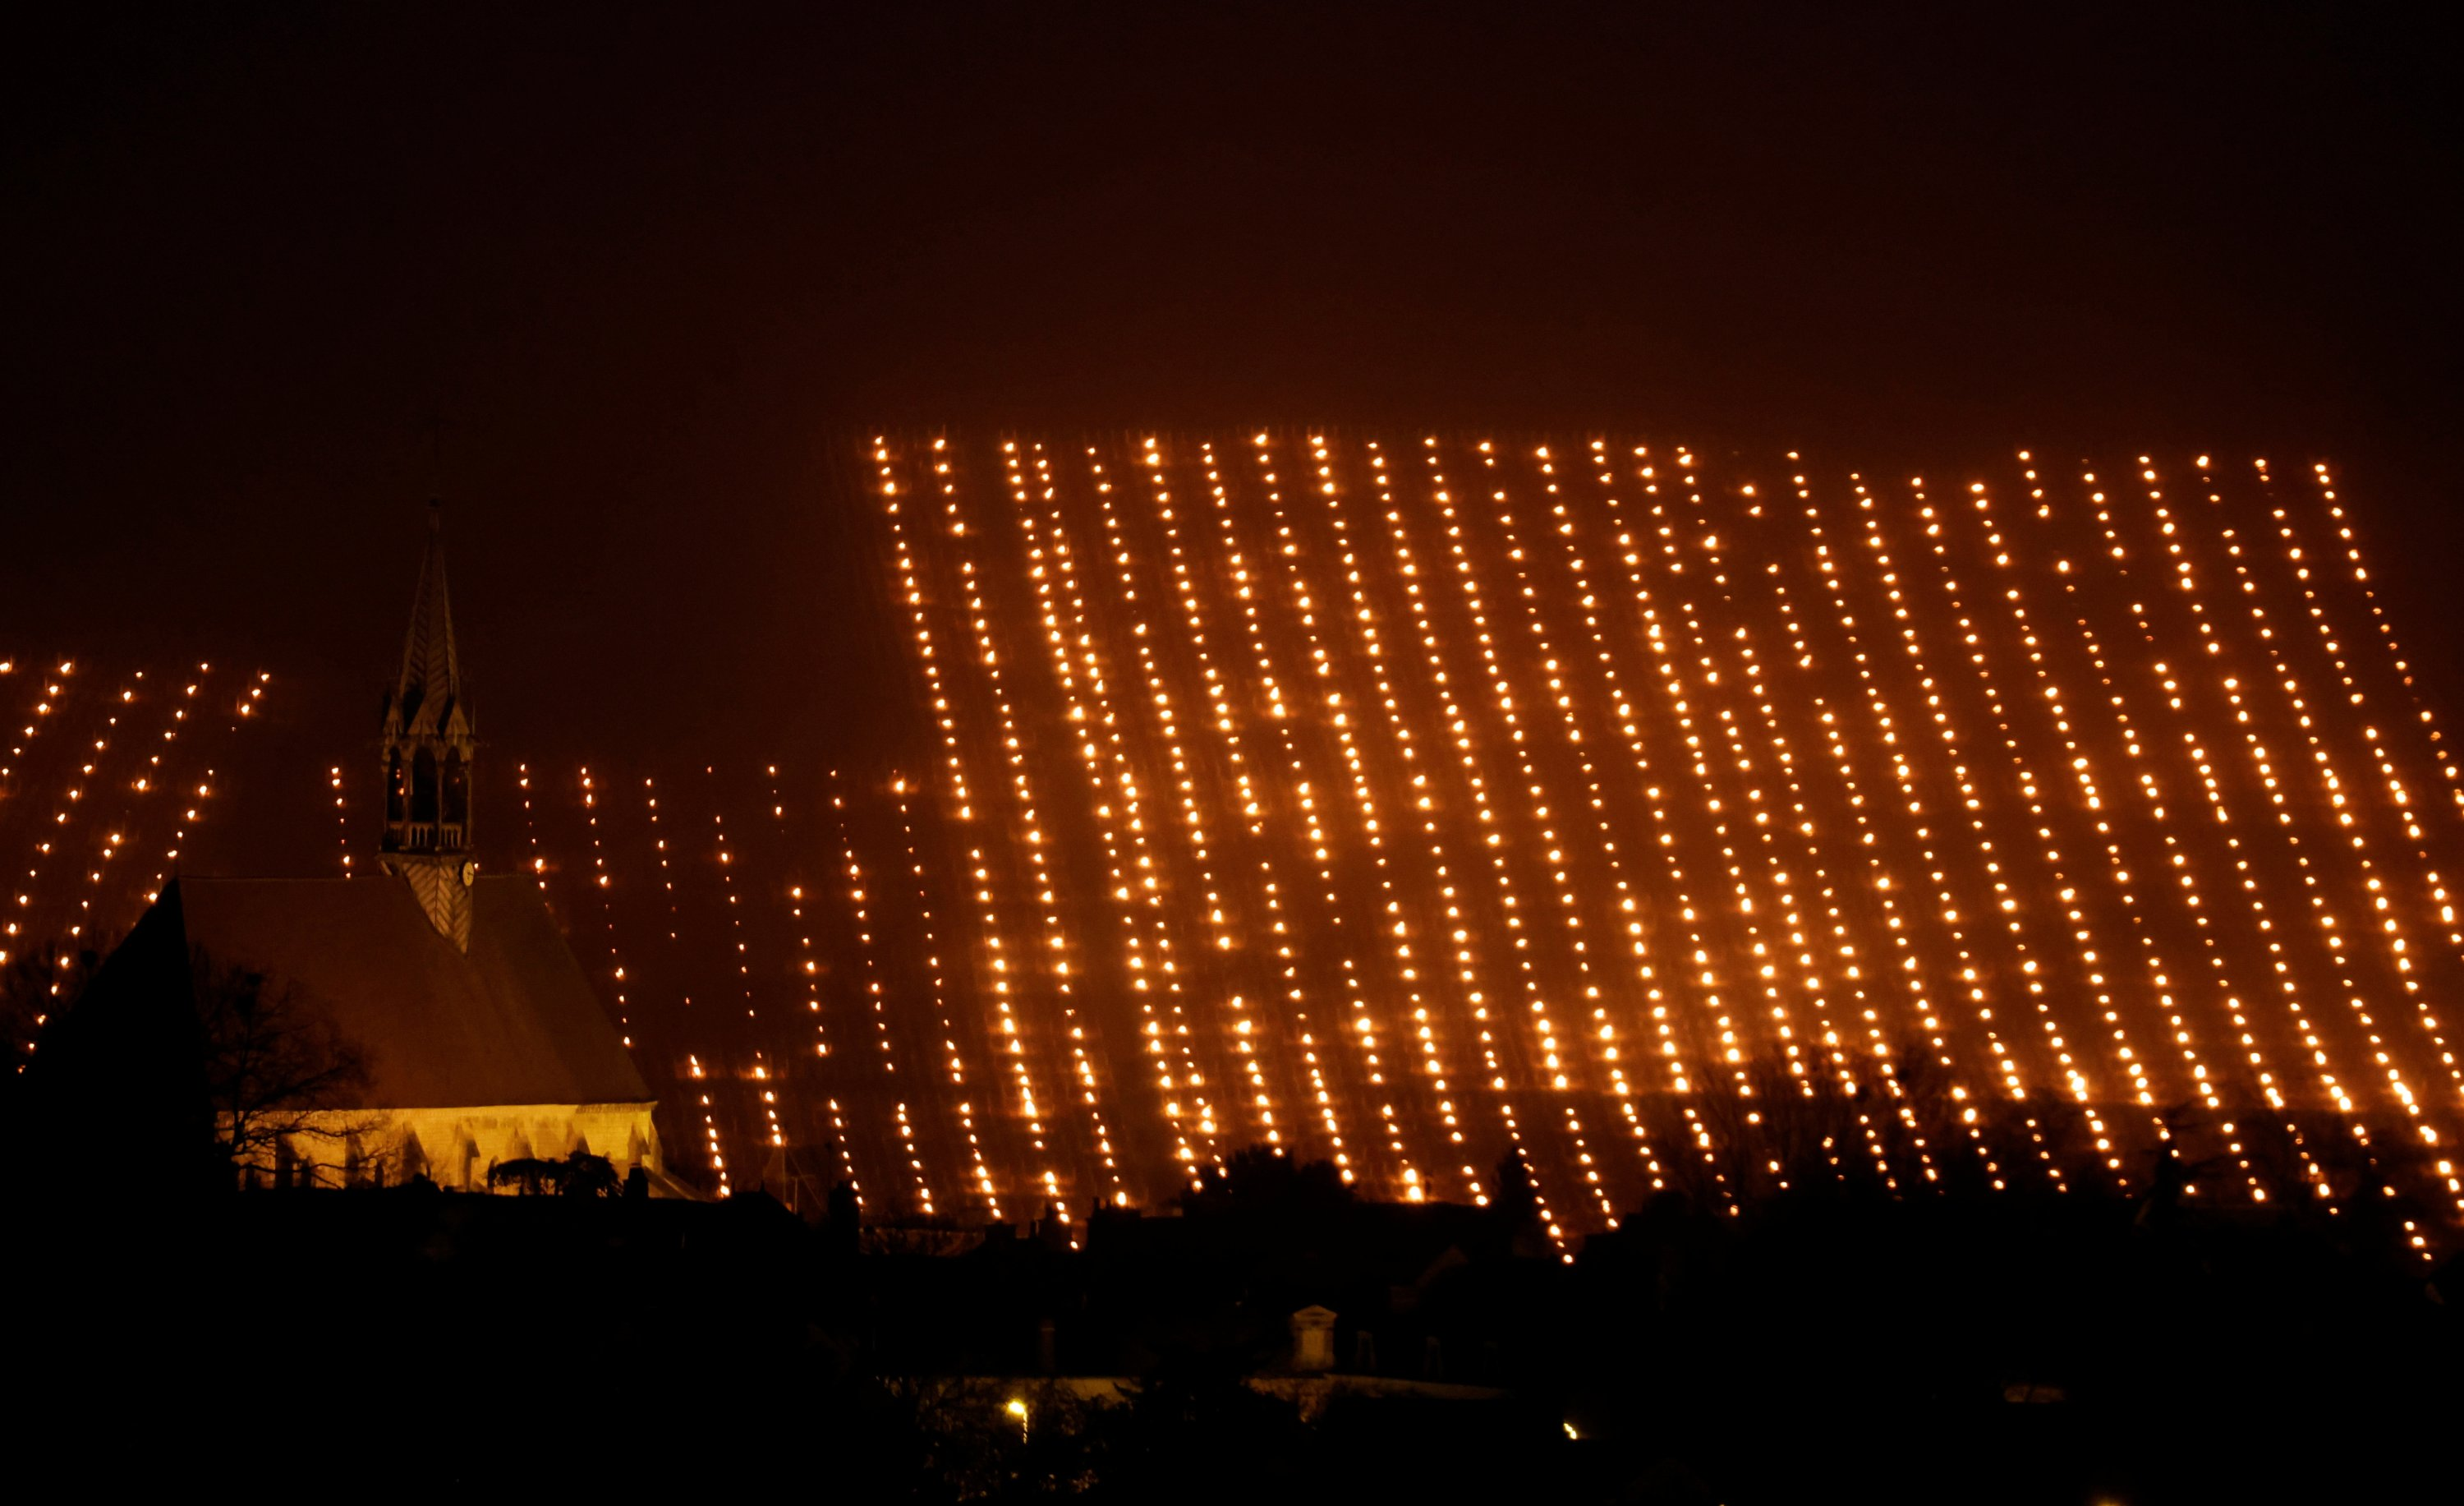 Heaters are lit early in the morning to protect vineyards from frost damage outside Chablis, France, April 7, 2021. (Reuters Photo)